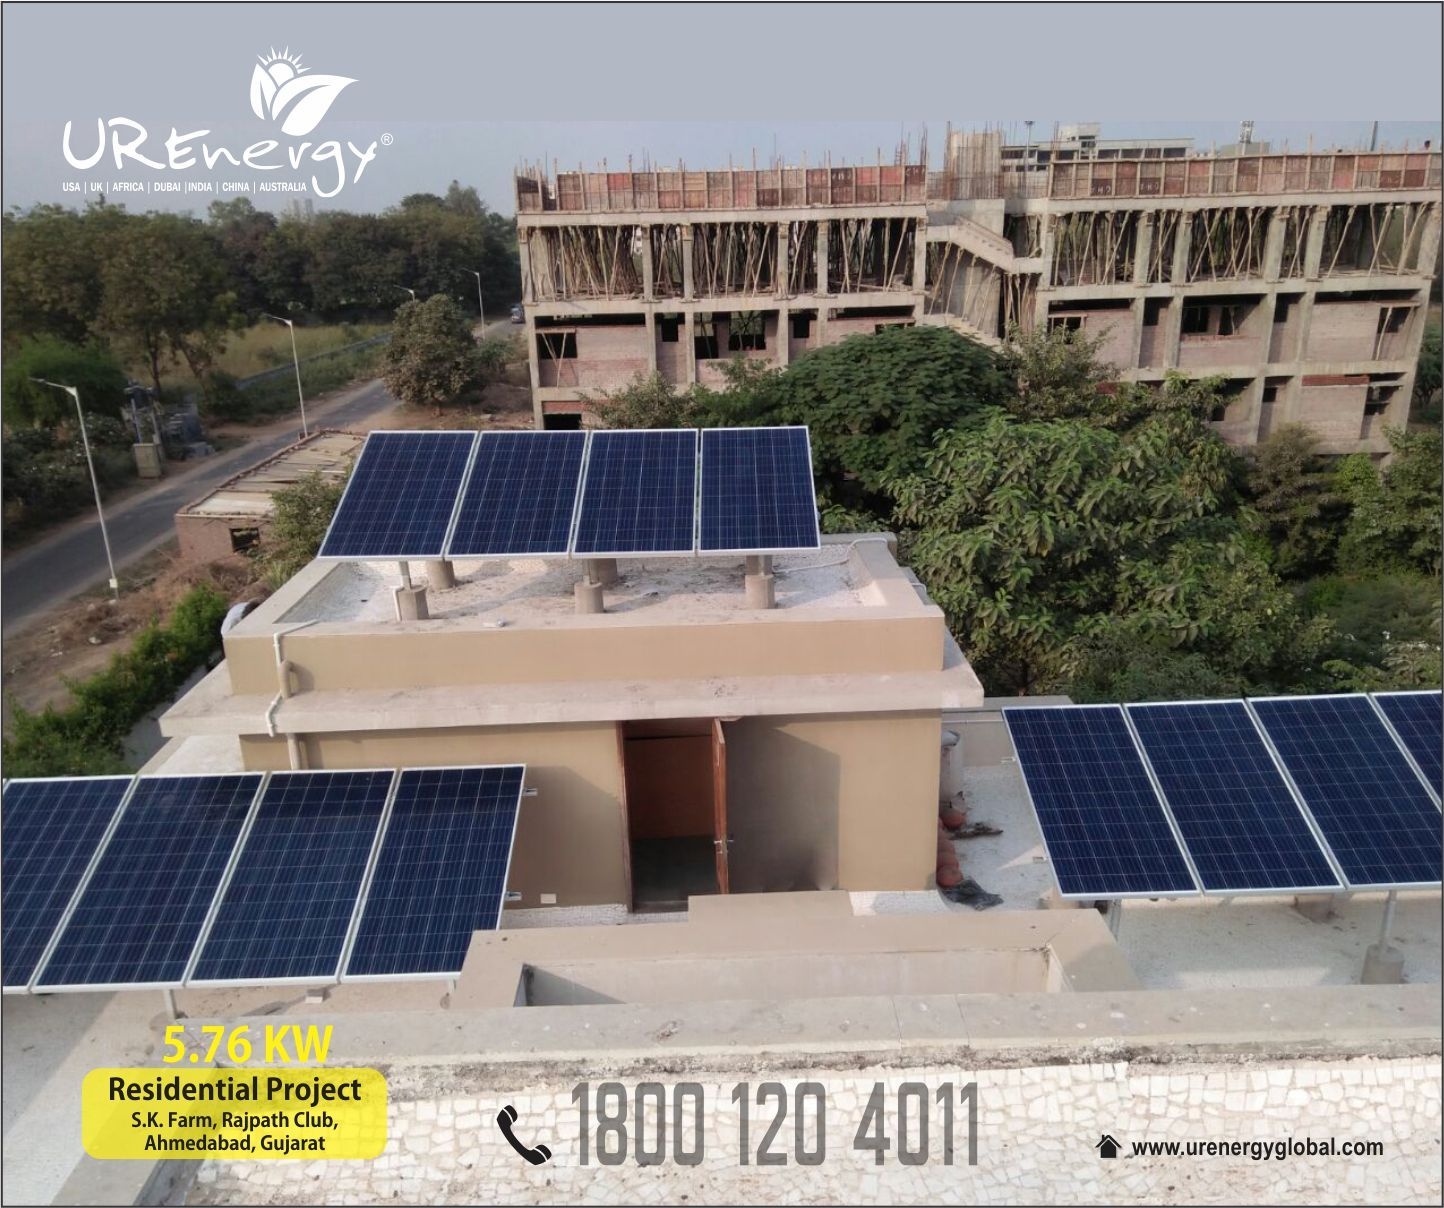 Rooftop Solar Panel Inverters Water Pump Solar Epc Gujarat India U R Energy Solar Solar Water Pump Solar Panel Inverter